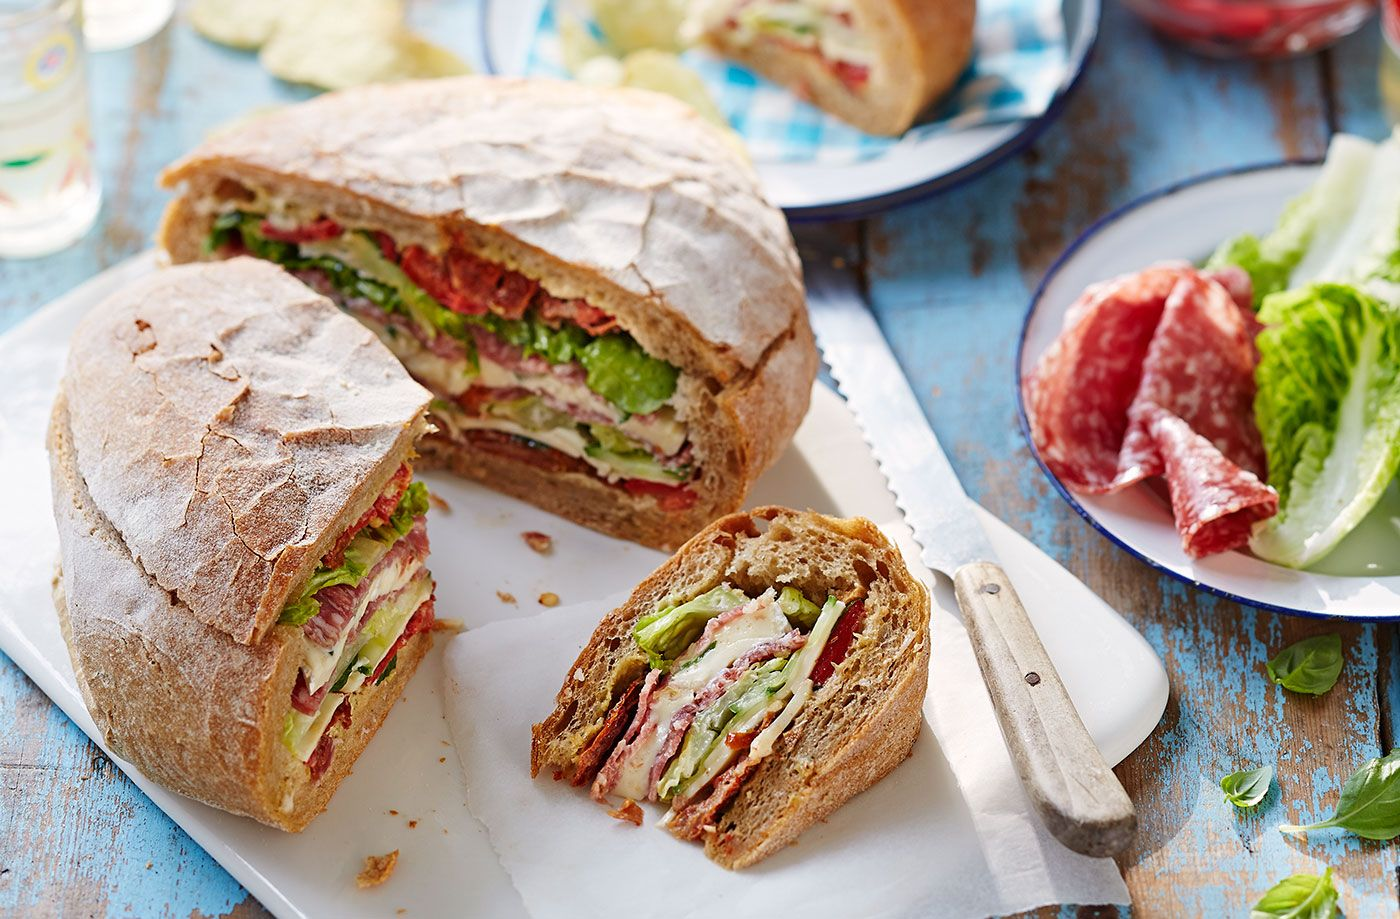 Pancetta and pepper picnic loaf recipe picnics pepper and pancetta and pepper picnic loaf recipe picnics pepper and real foods forumfinder Image collections